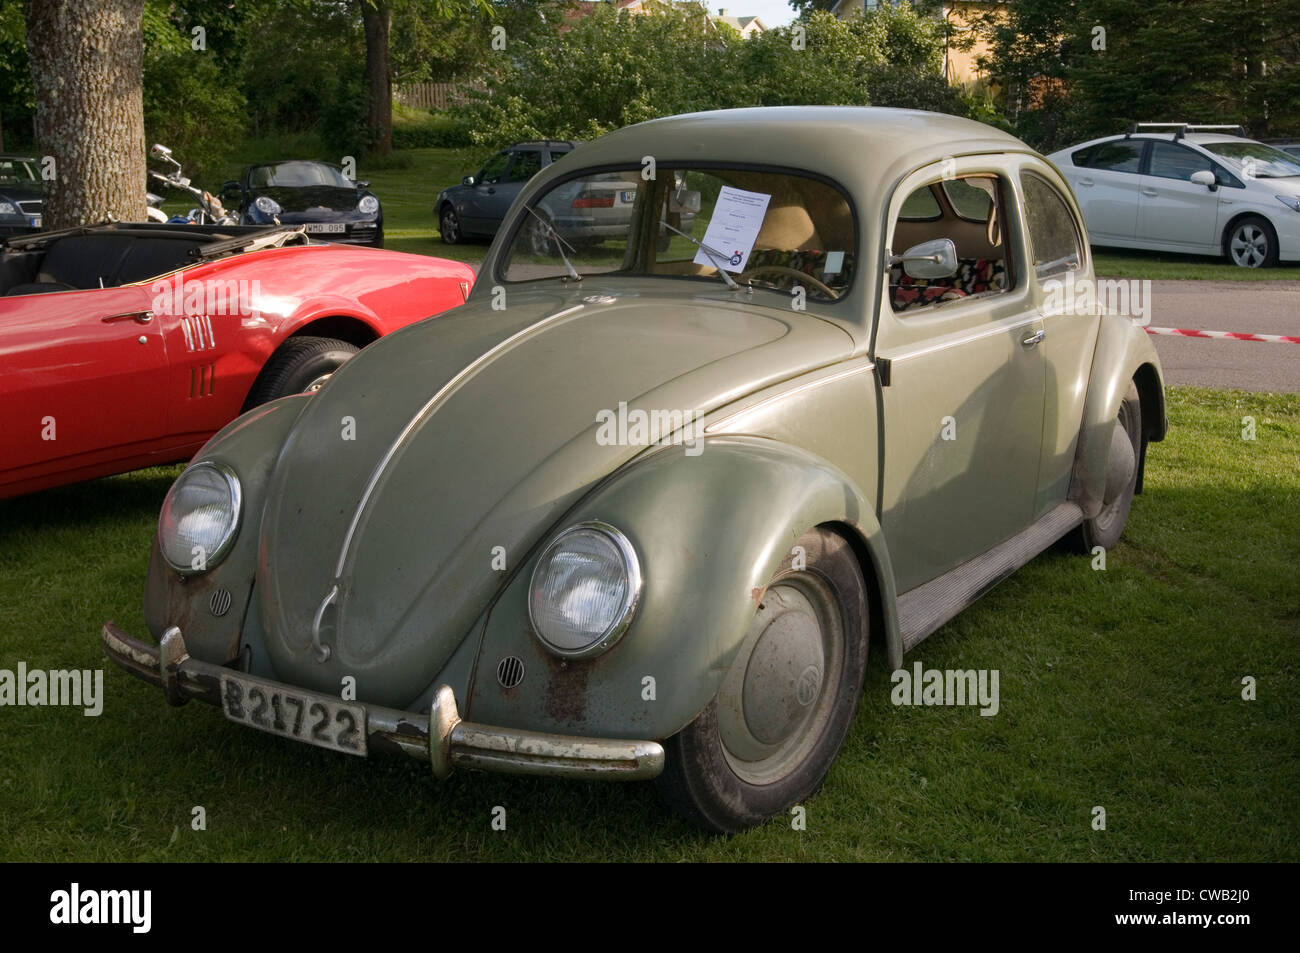 split window early beetle vw volkswagen peoples car classic cars old - Stock Image